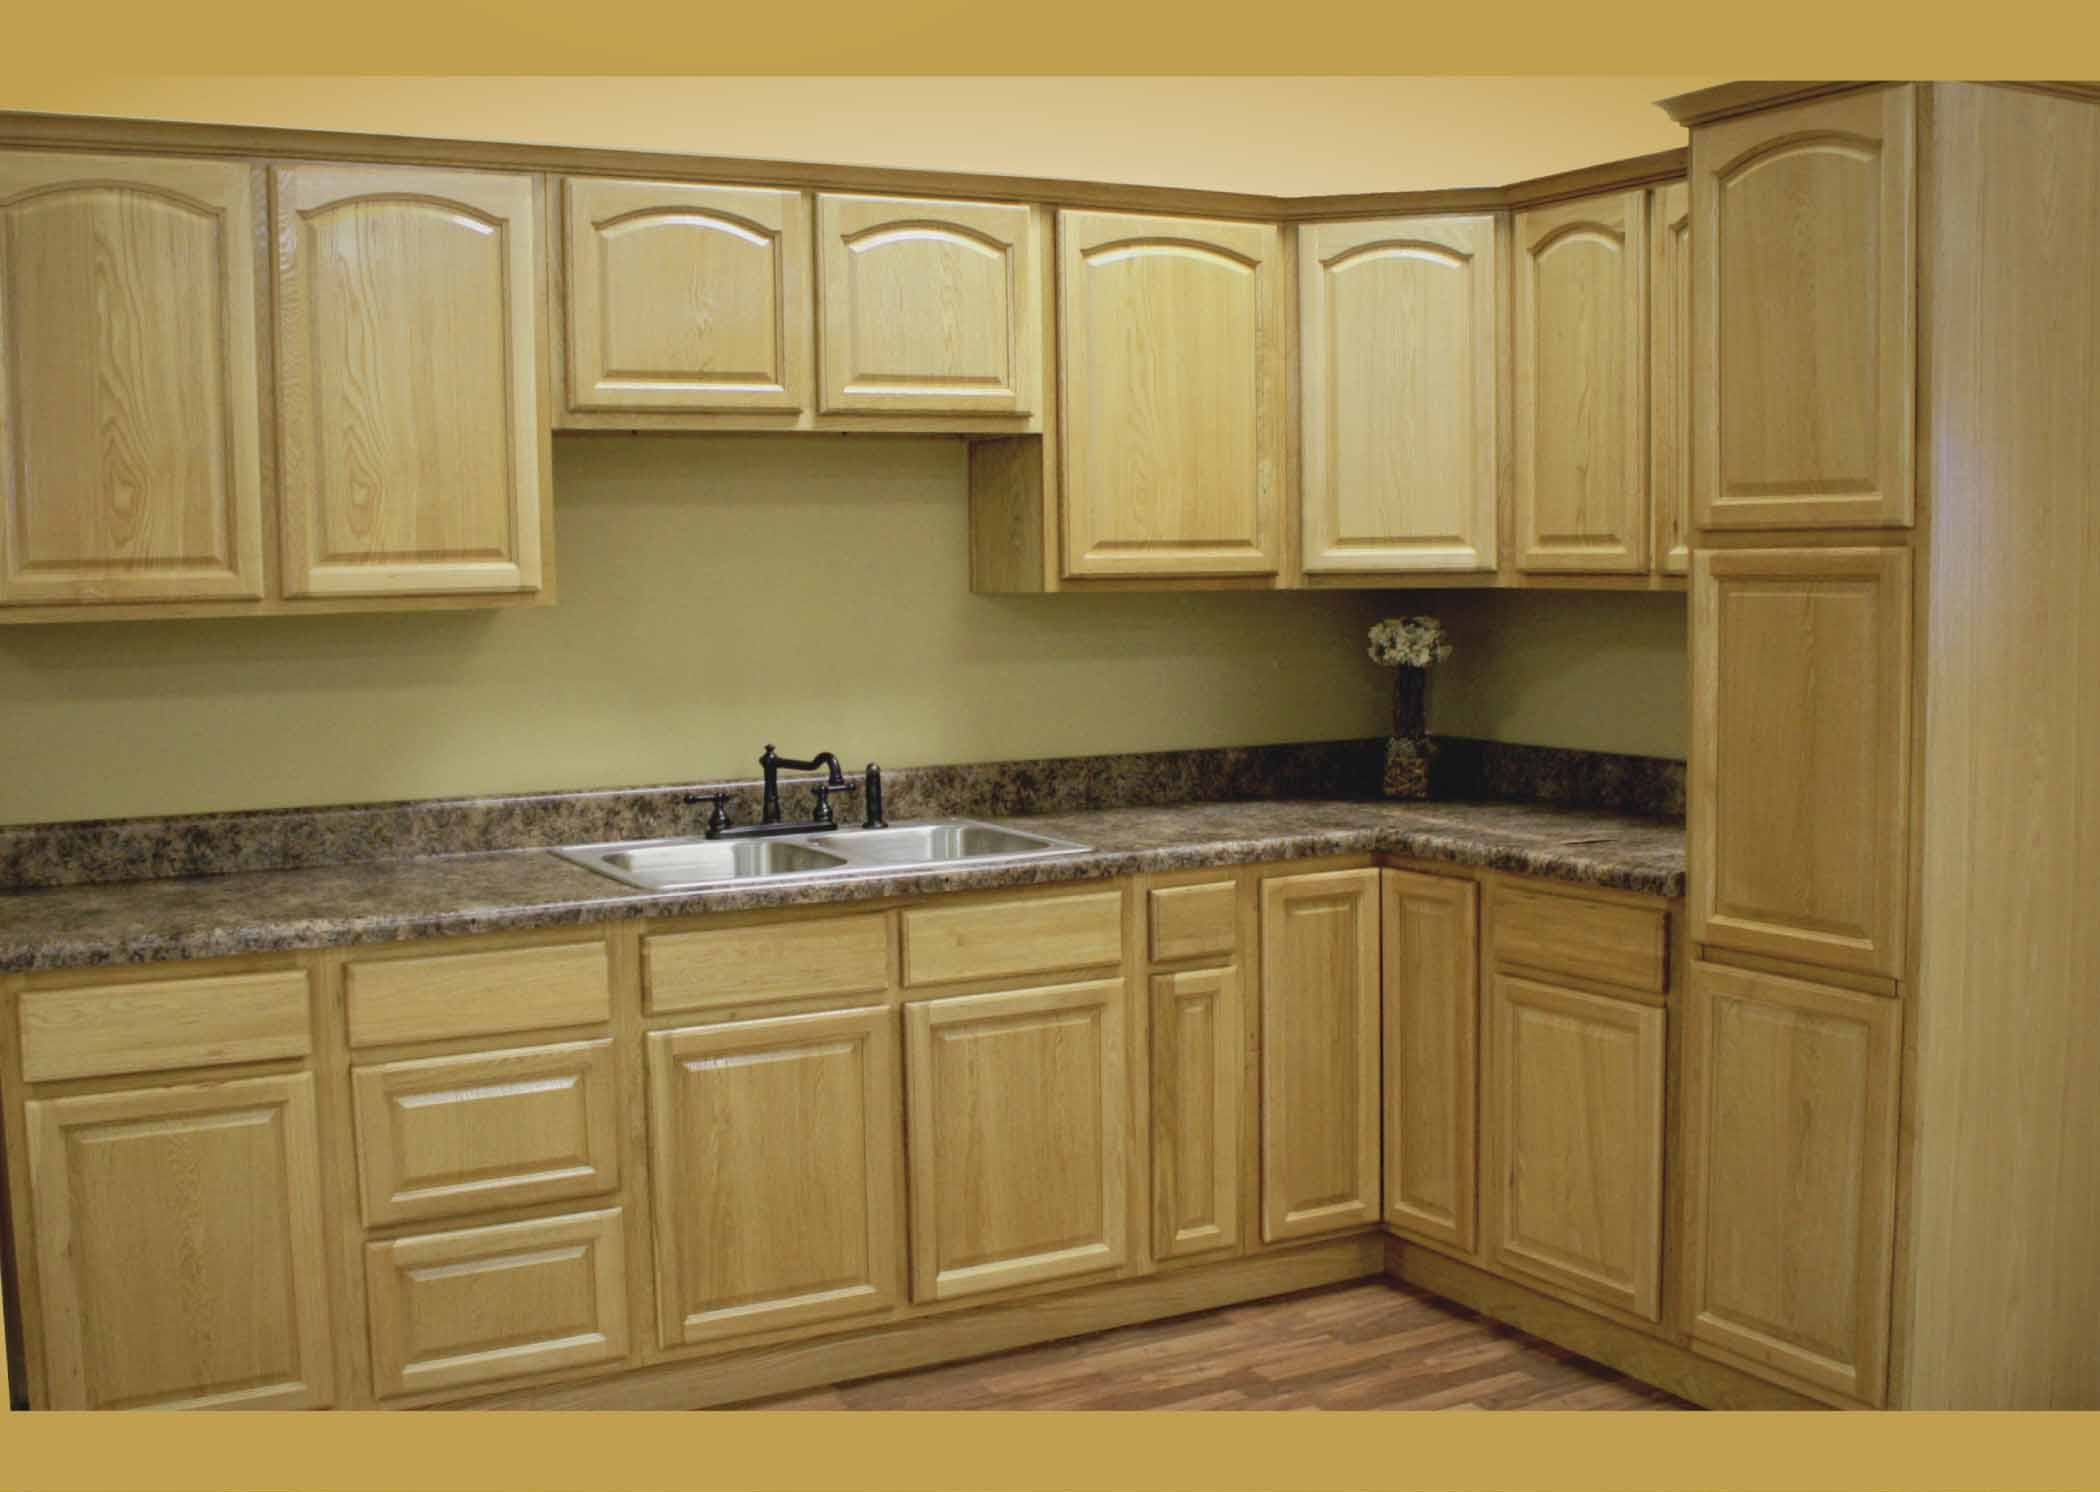 Ex Diskitchen Cabinets In Stock Cabinets New Home Improvement Products At Discount Prices